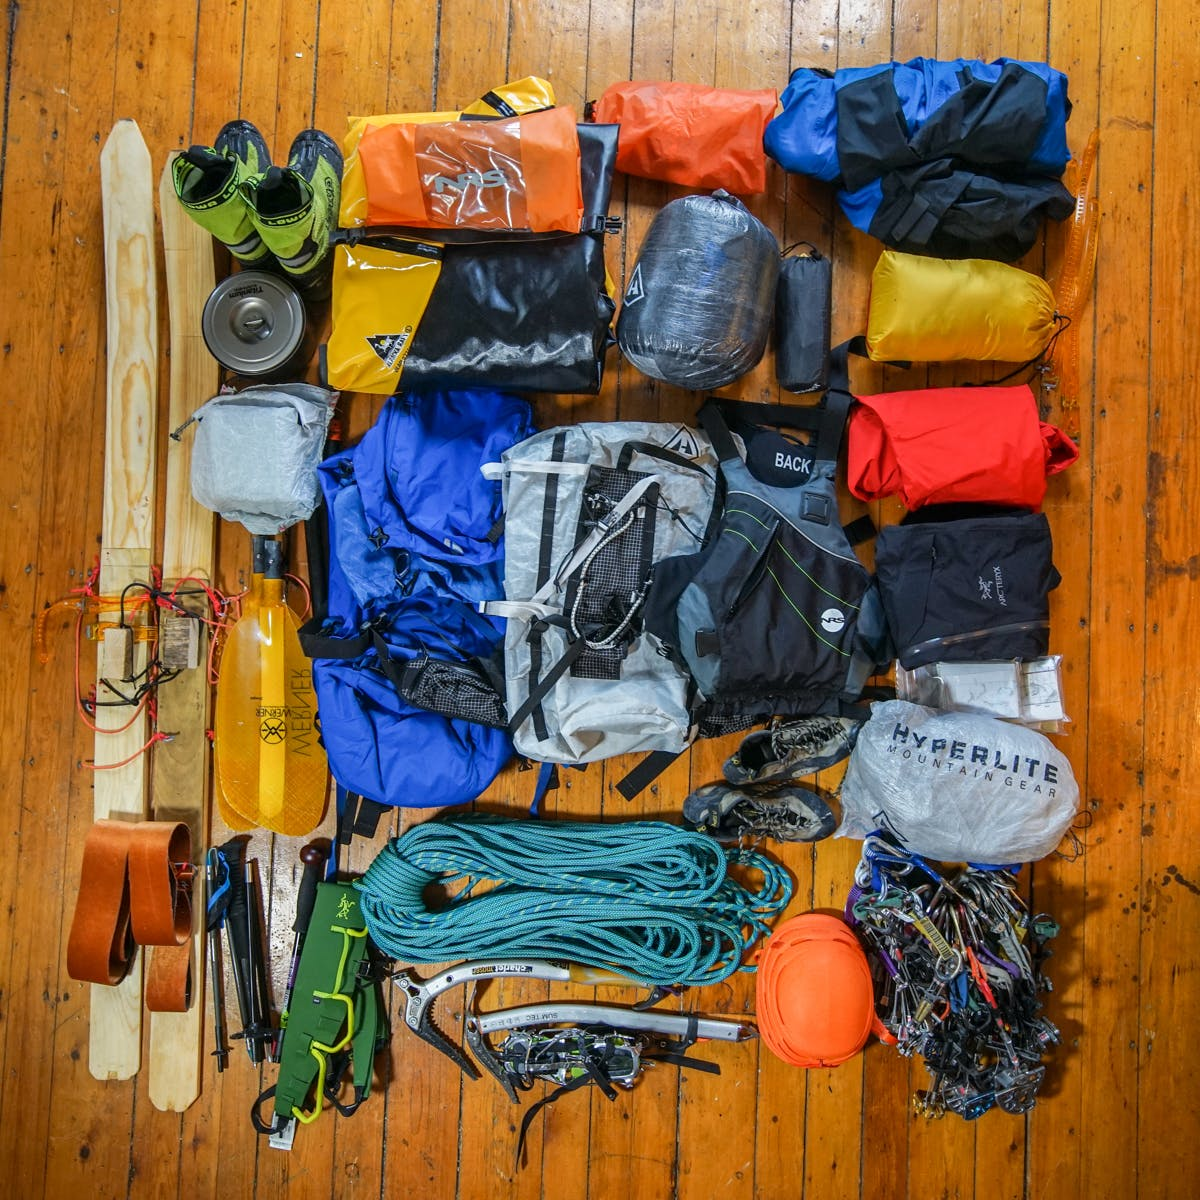 What do you need for a month-long, multi-sport adventure to wild Alaska? Thanks to @davidbfay @drewthayer & @craigmuderlak for sharing their amazing adventures with us and this cool photo of Craig's full gear kit. The trio ended up making and then burning these DIY skis to lighten their loads on the way out.